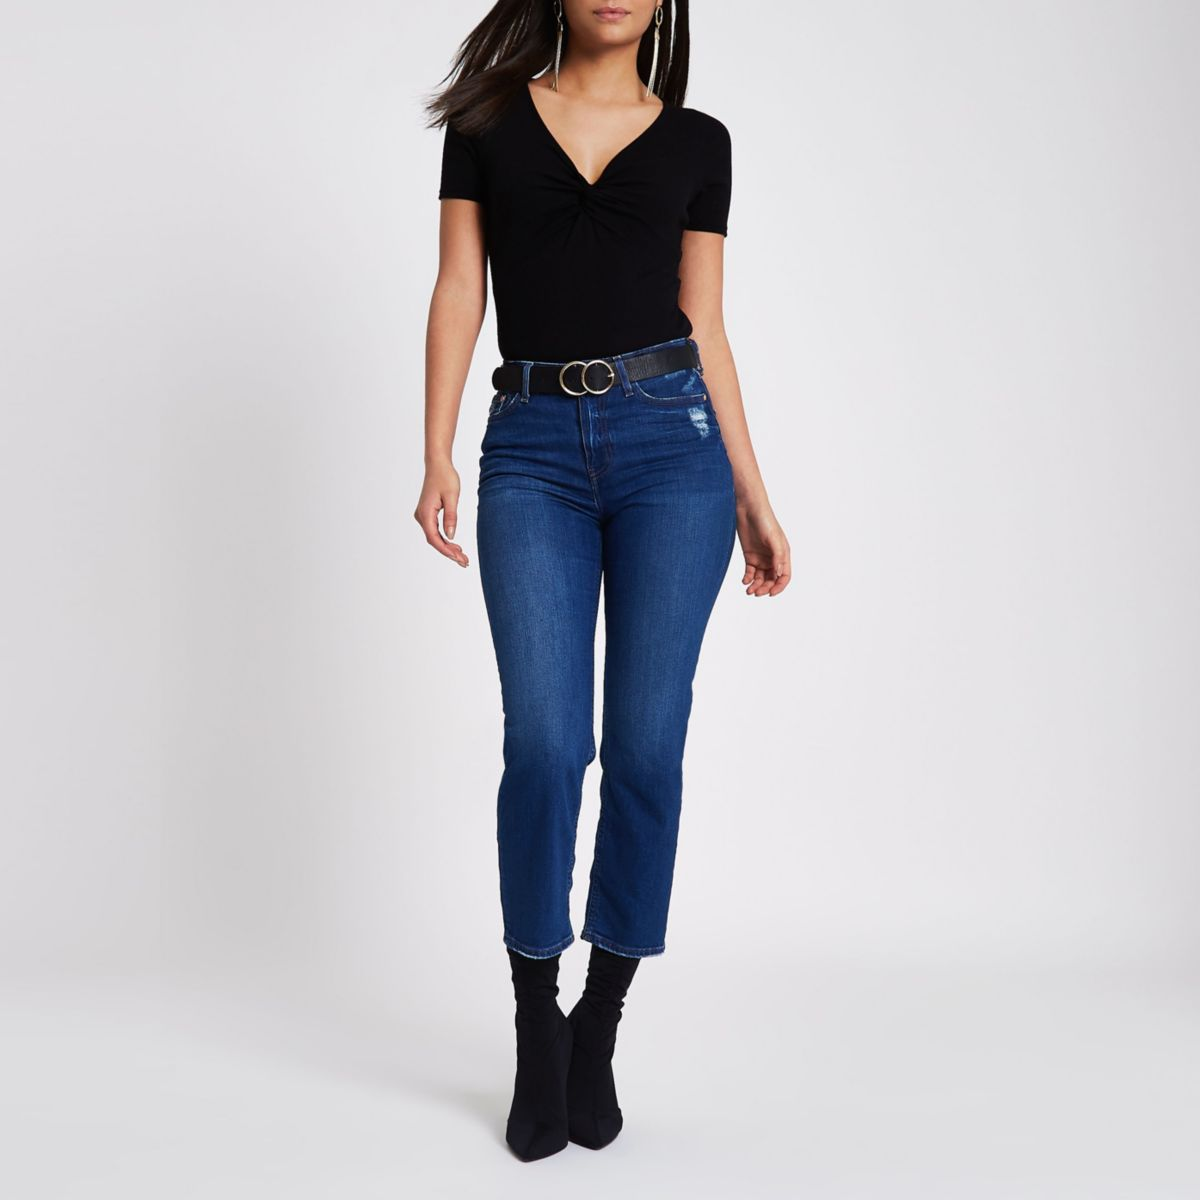 Black knot front fitted bodysuit